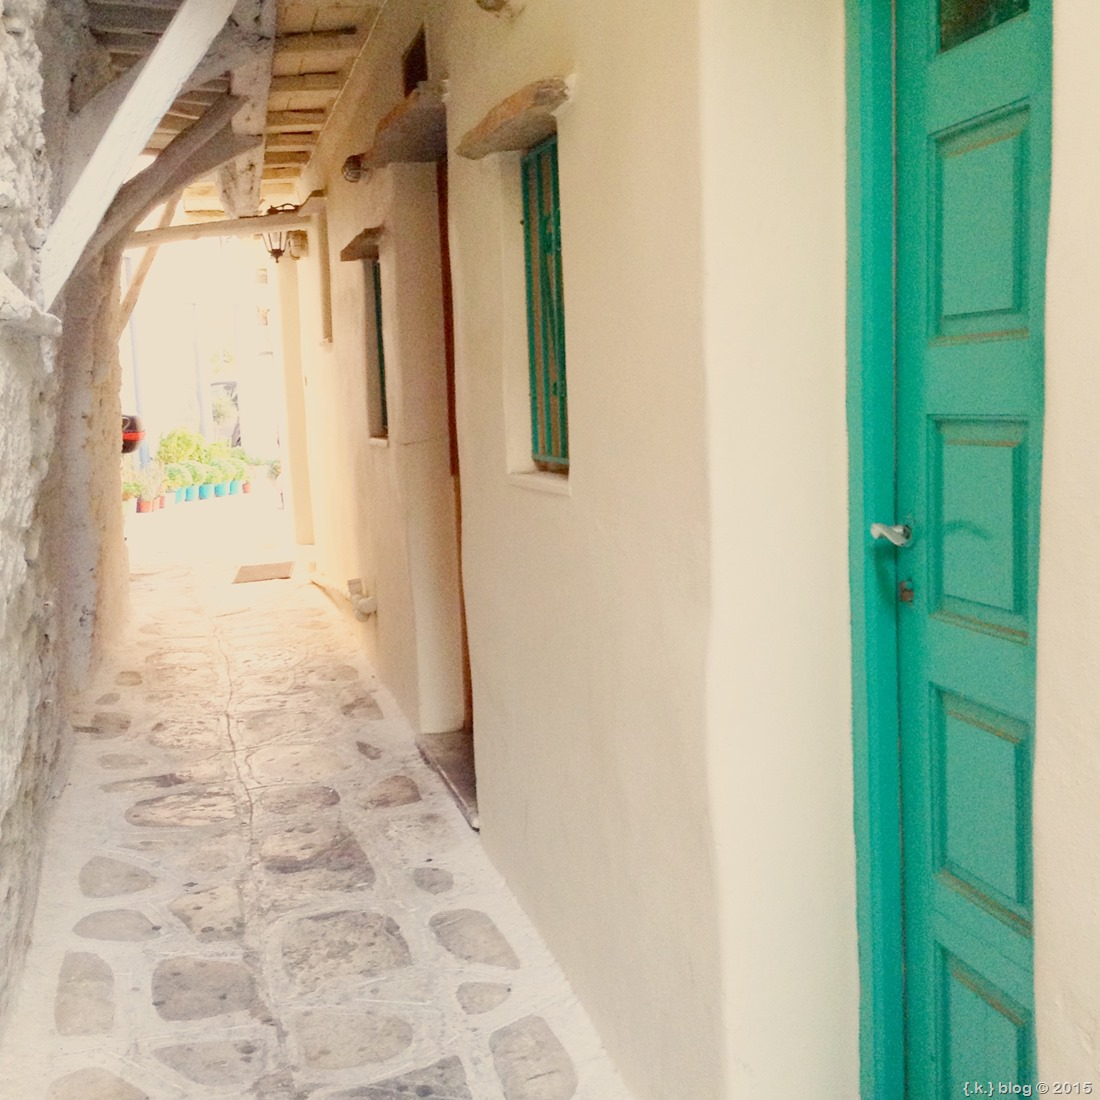 {.k.} blog - Tinos island in Greece